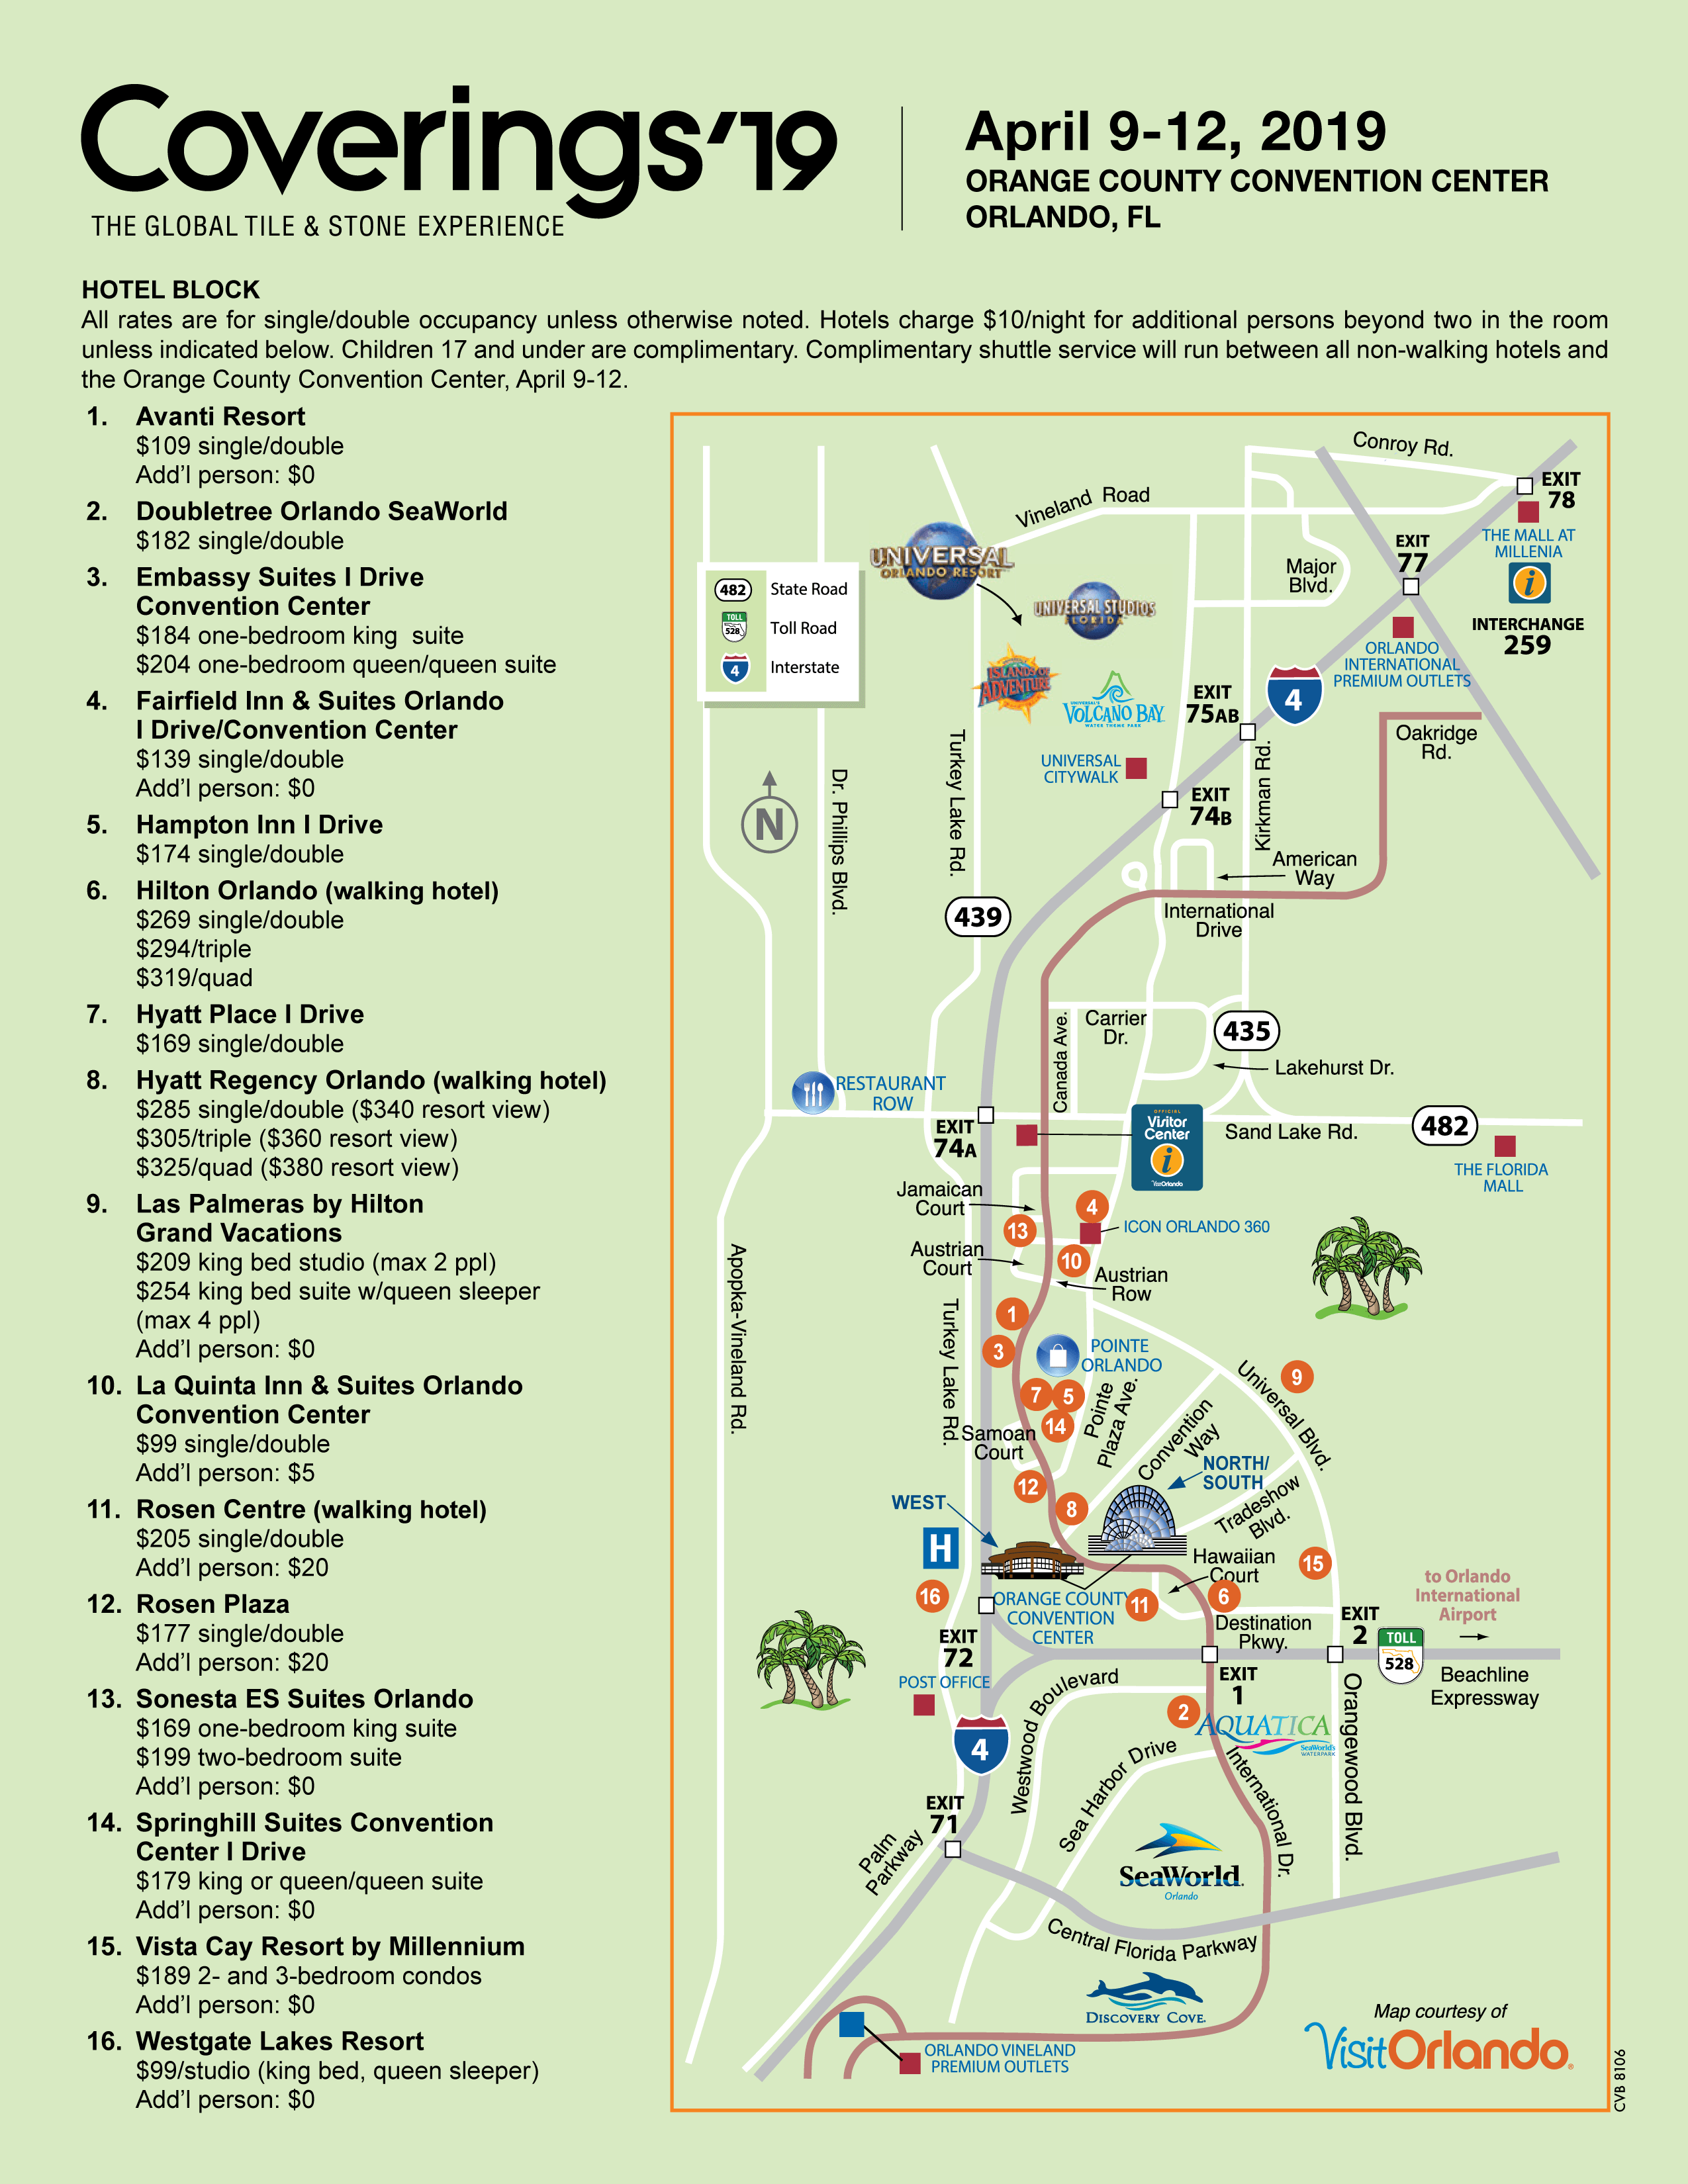 Map Of Georgia Hotels.Hotels Coverings 2020